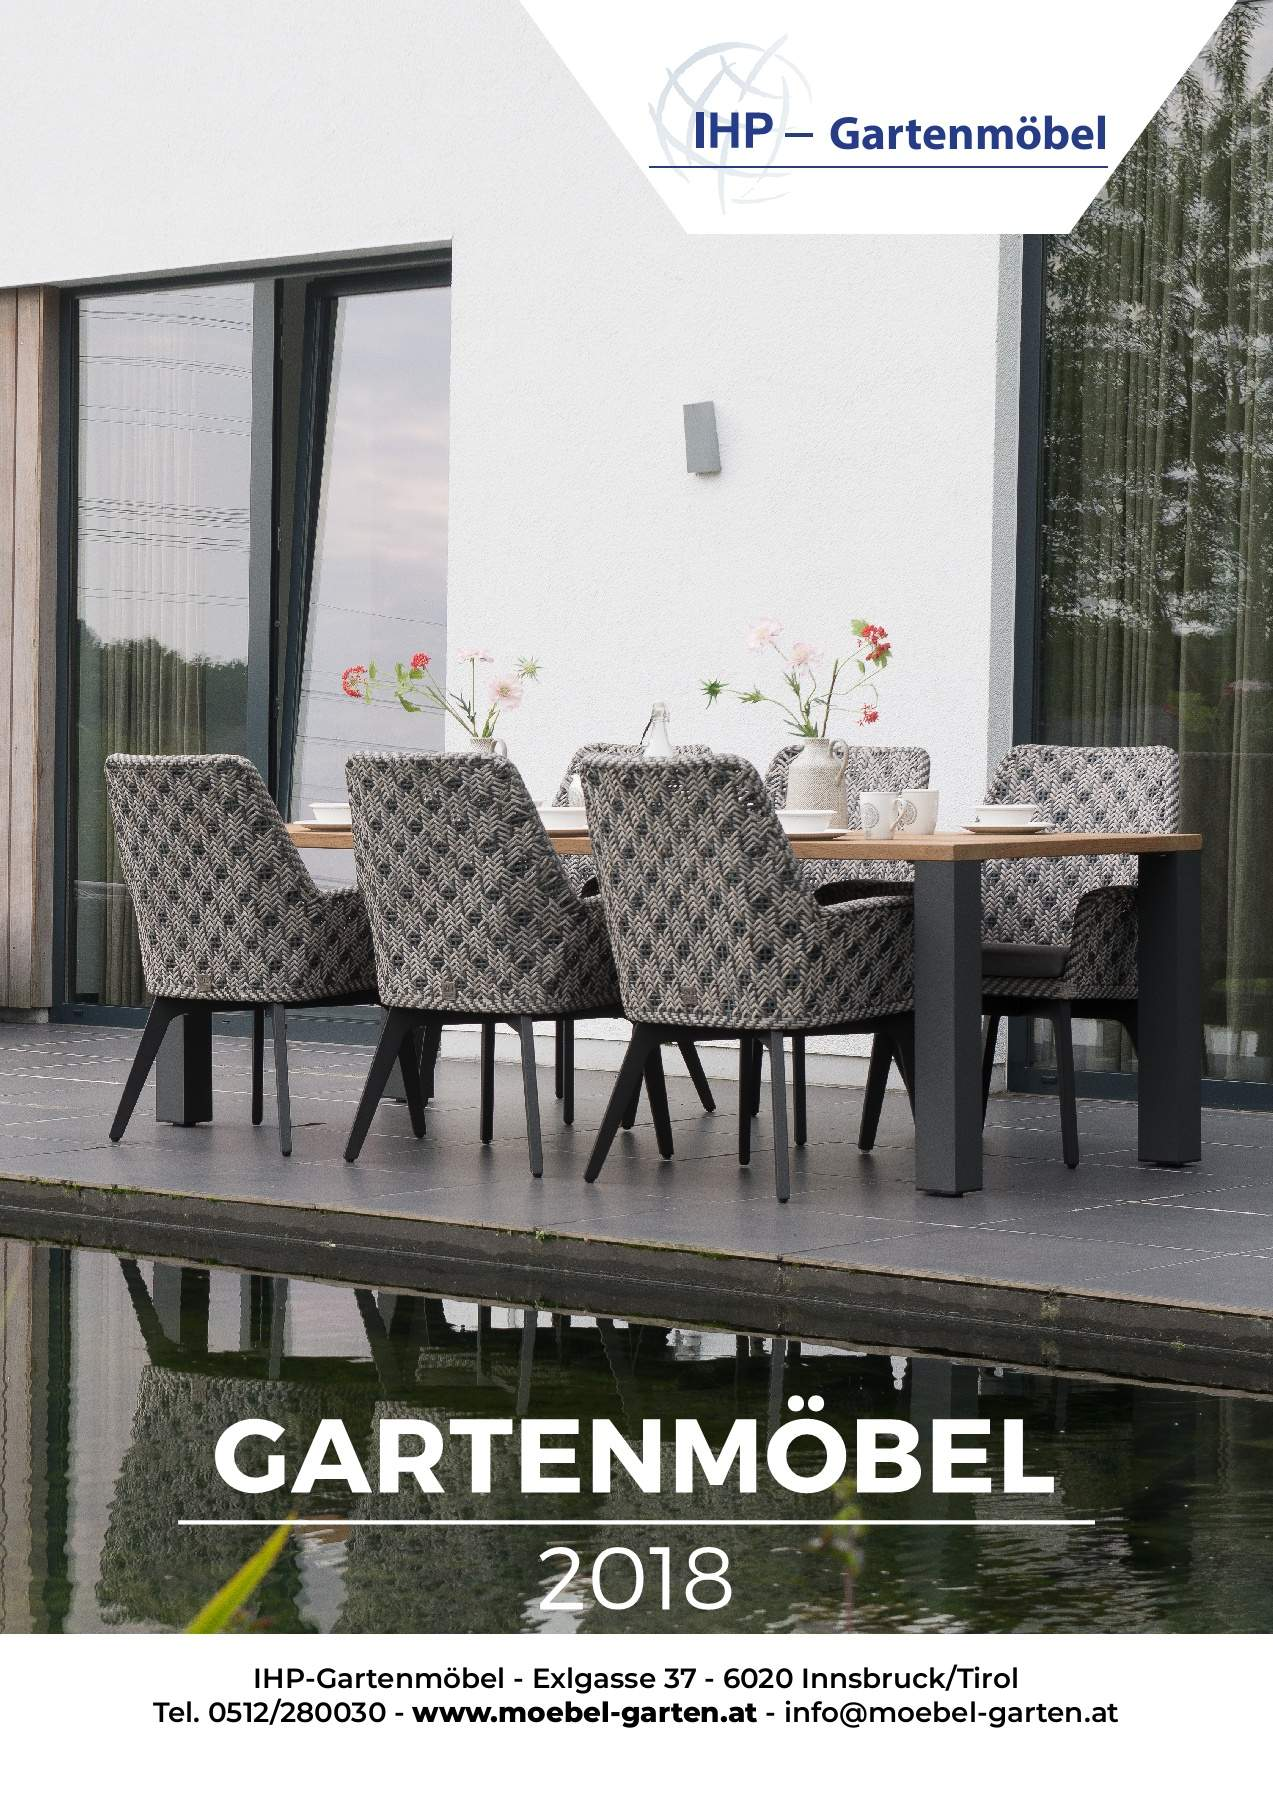 Möbel Garten Frisch Gartenmöbel Ihp 2018 Pages 1 24 Text Version